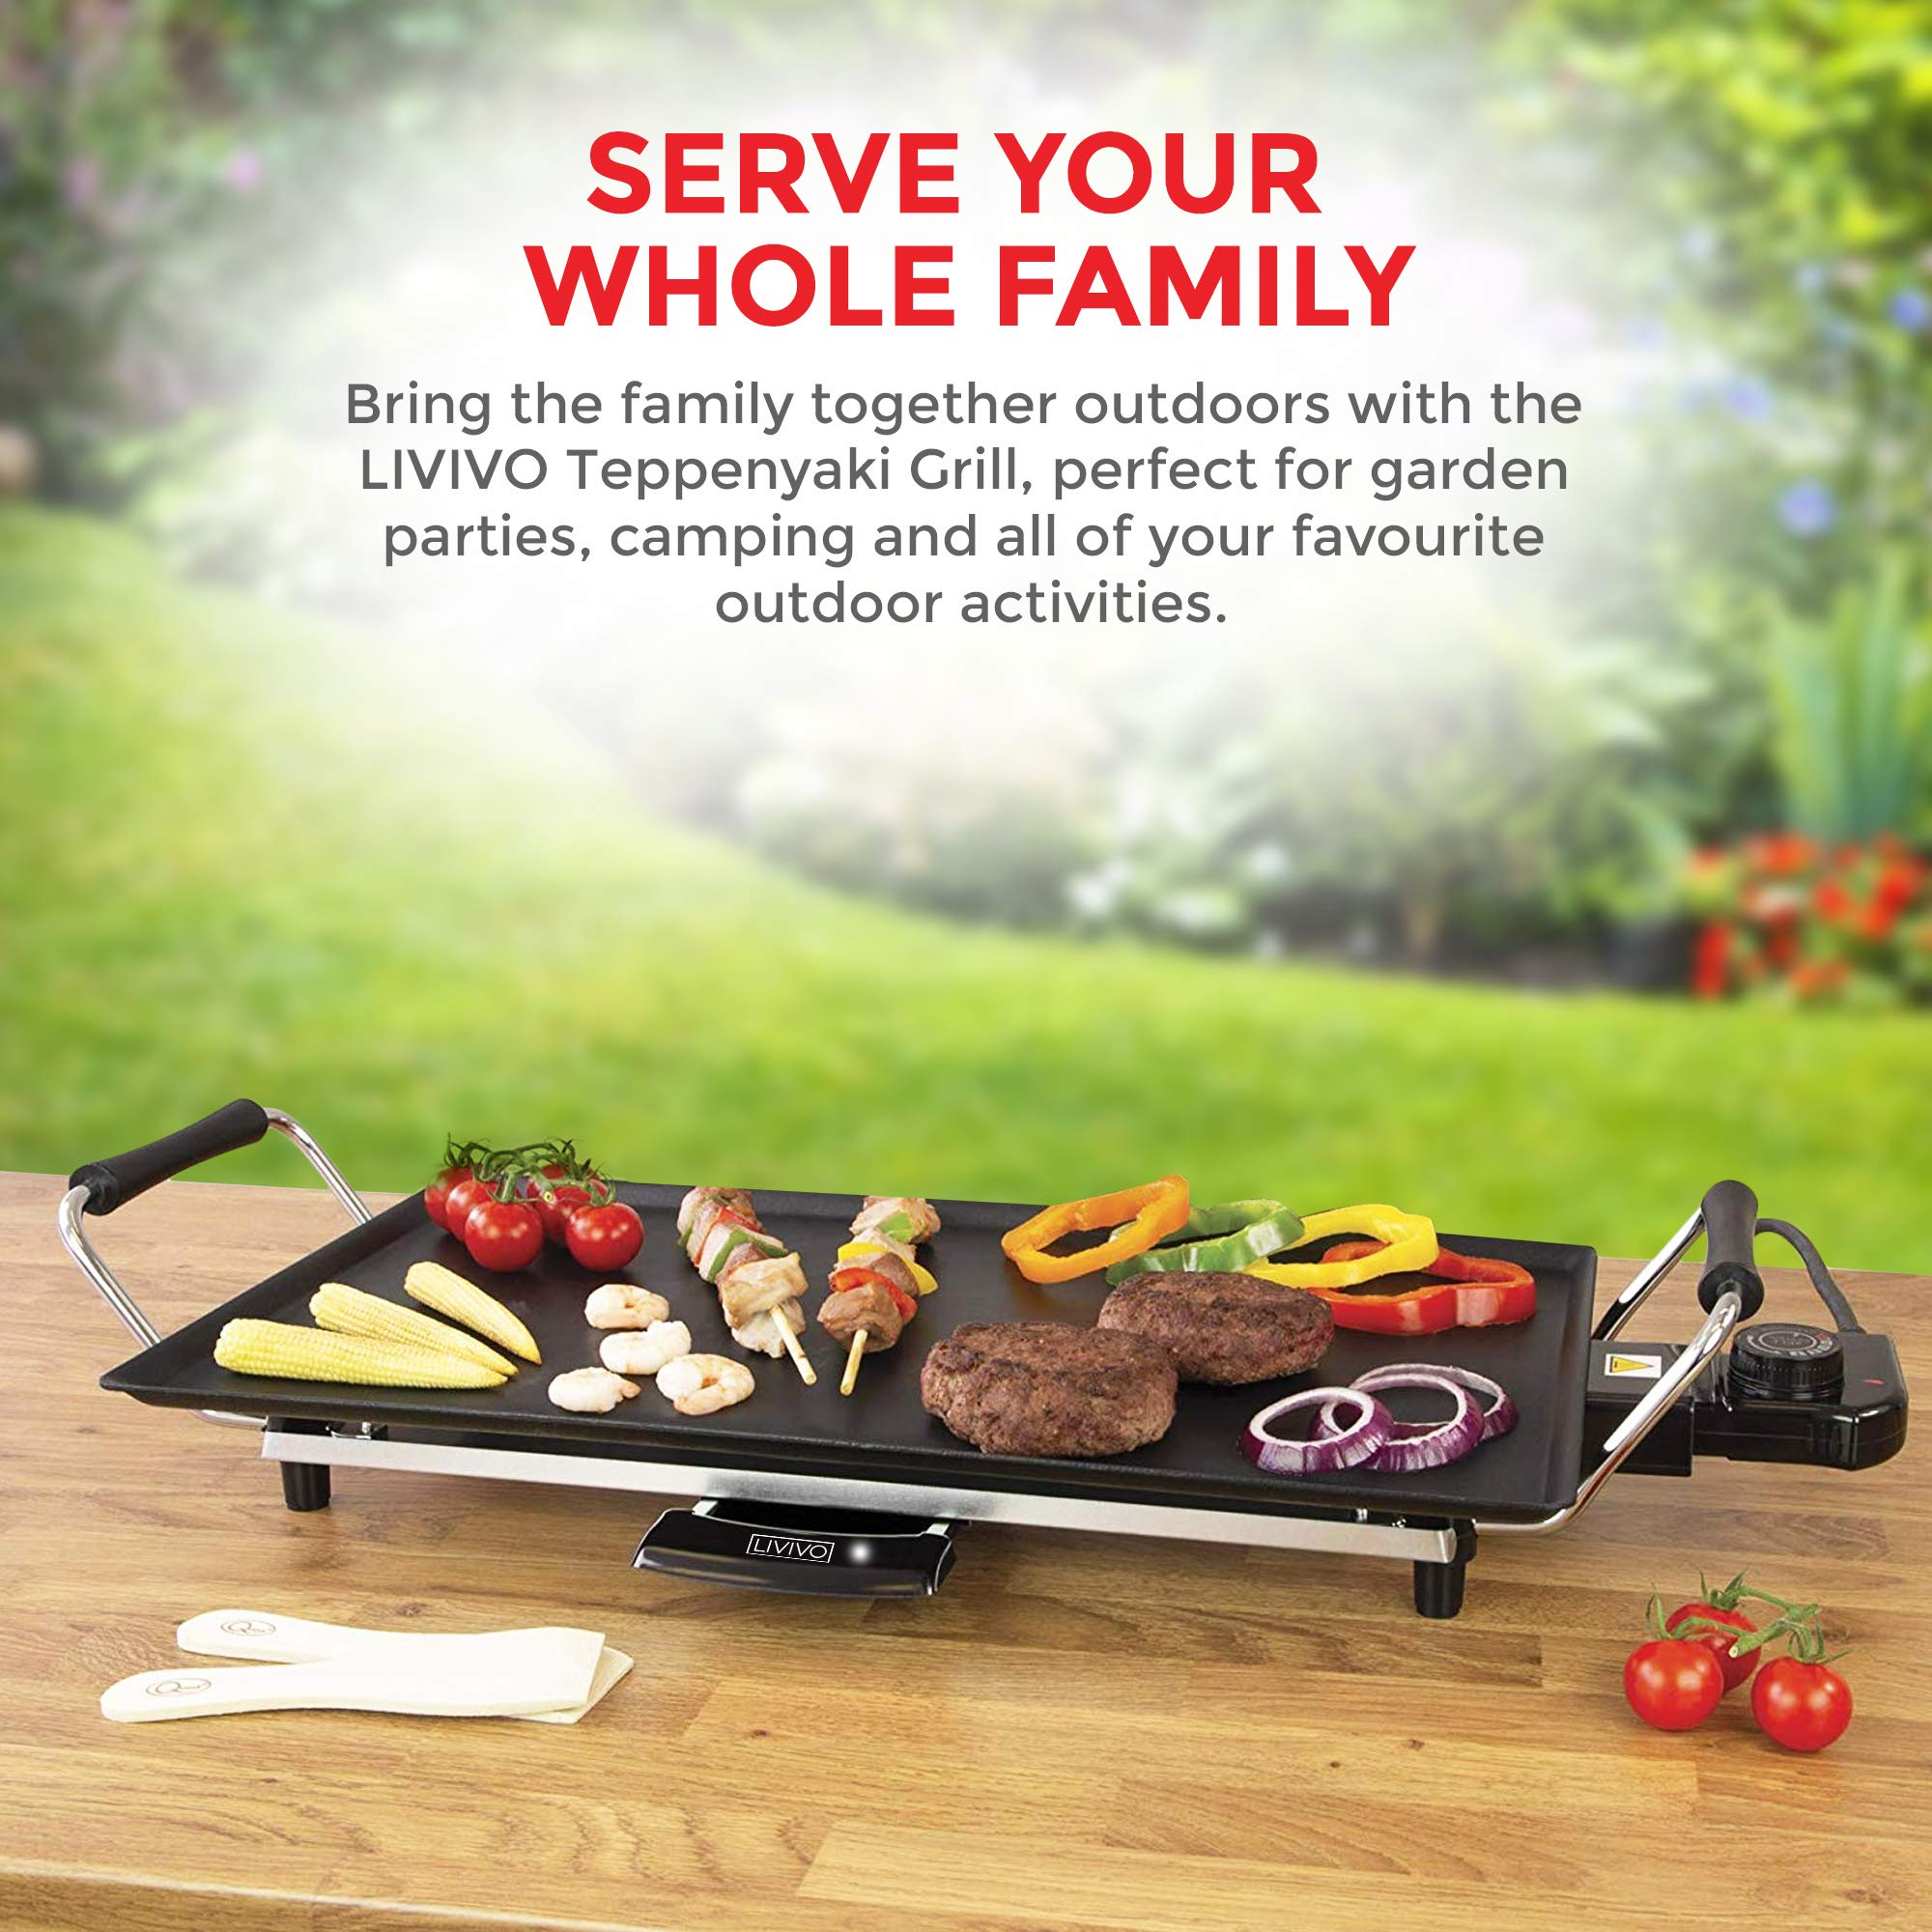 COSTWAY Electric Teppanyaki Table Top Grill Griddle BBQ Barbecue Nonstick Camping